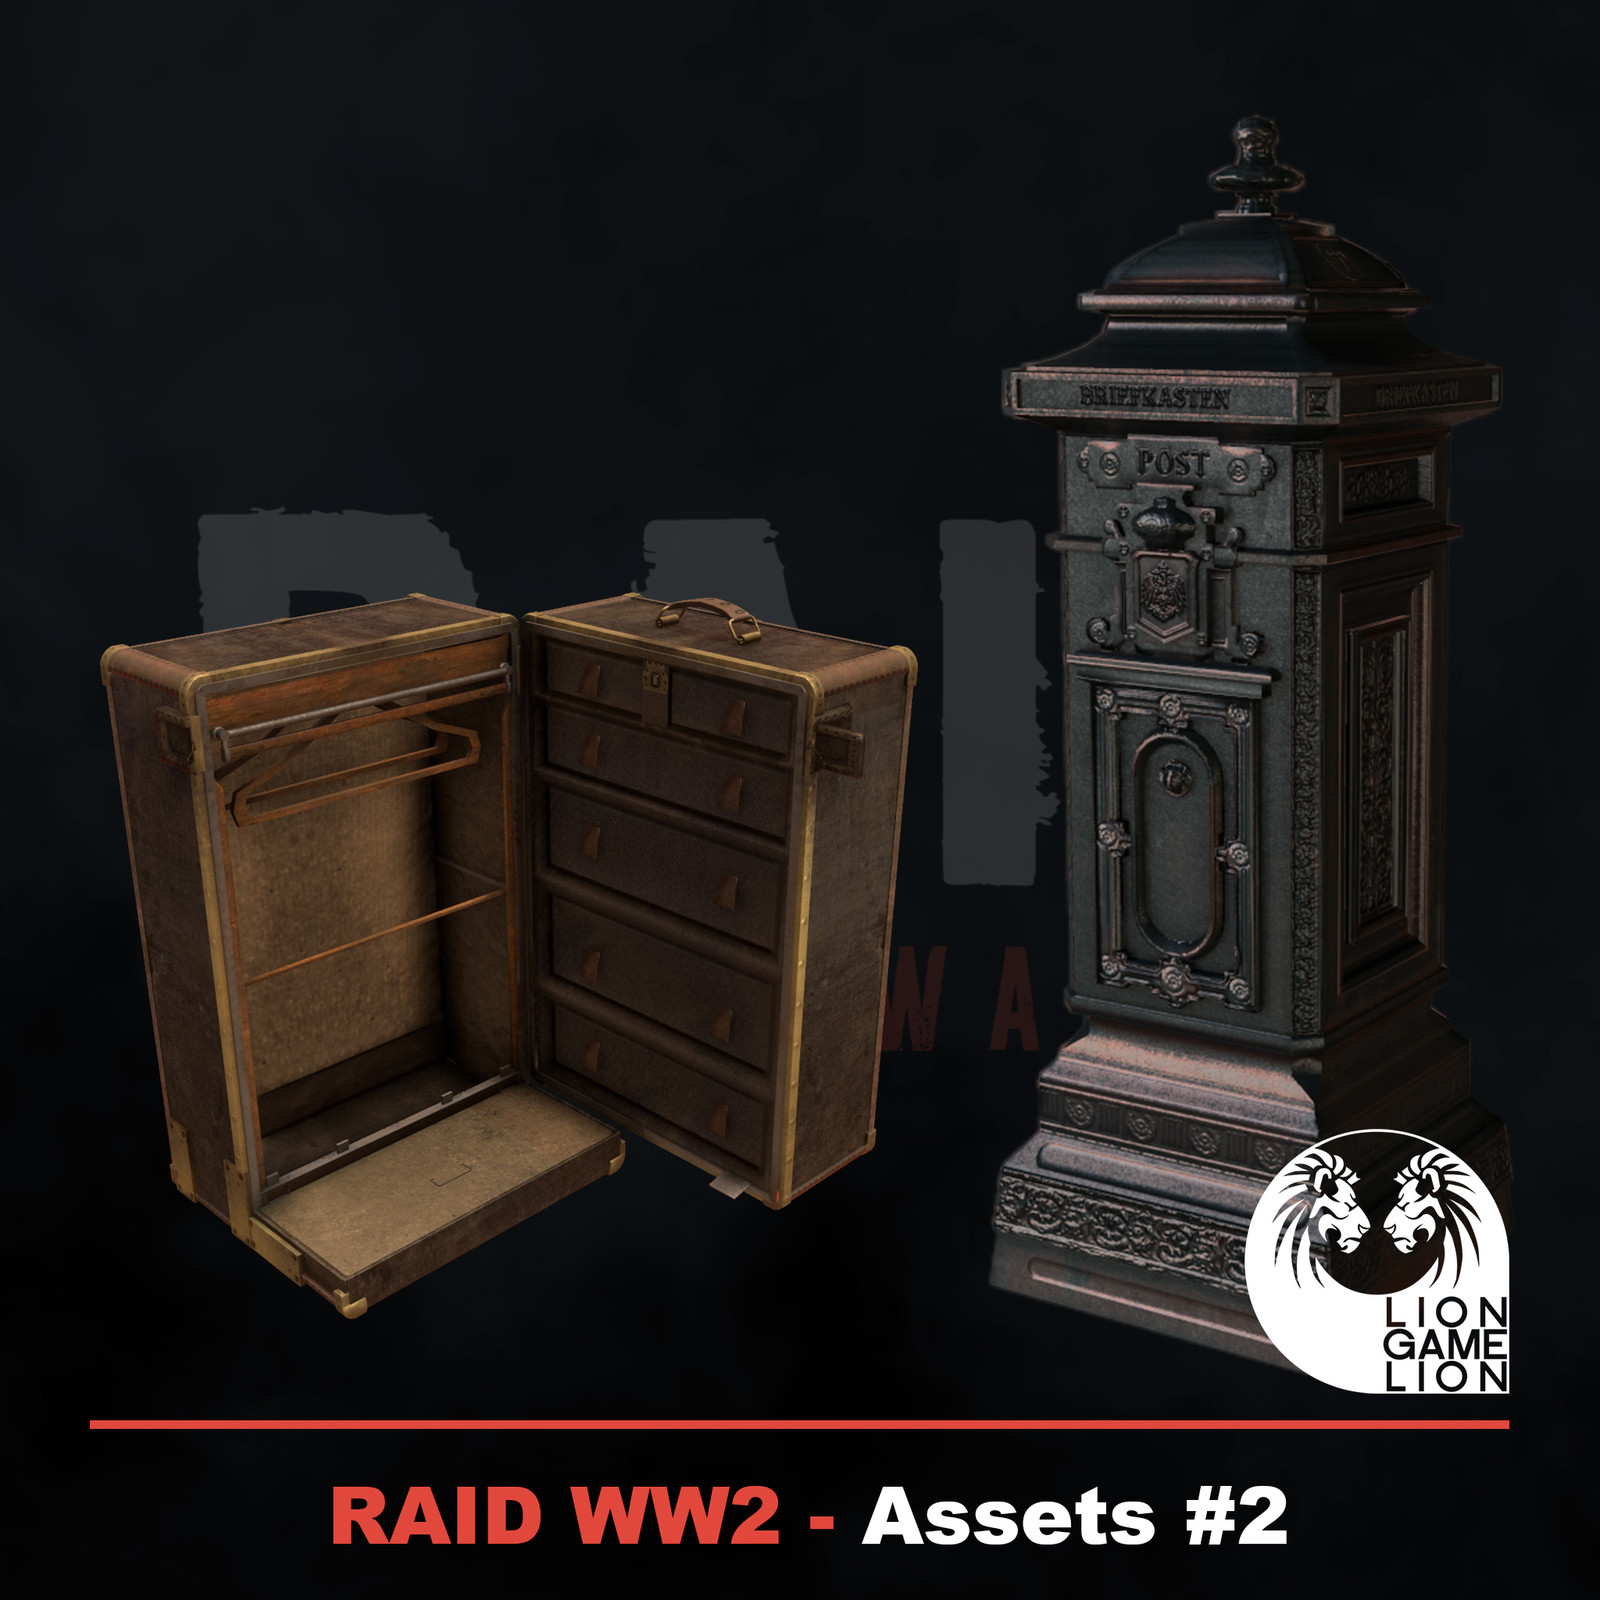 RAID World War II - Game Assets #2